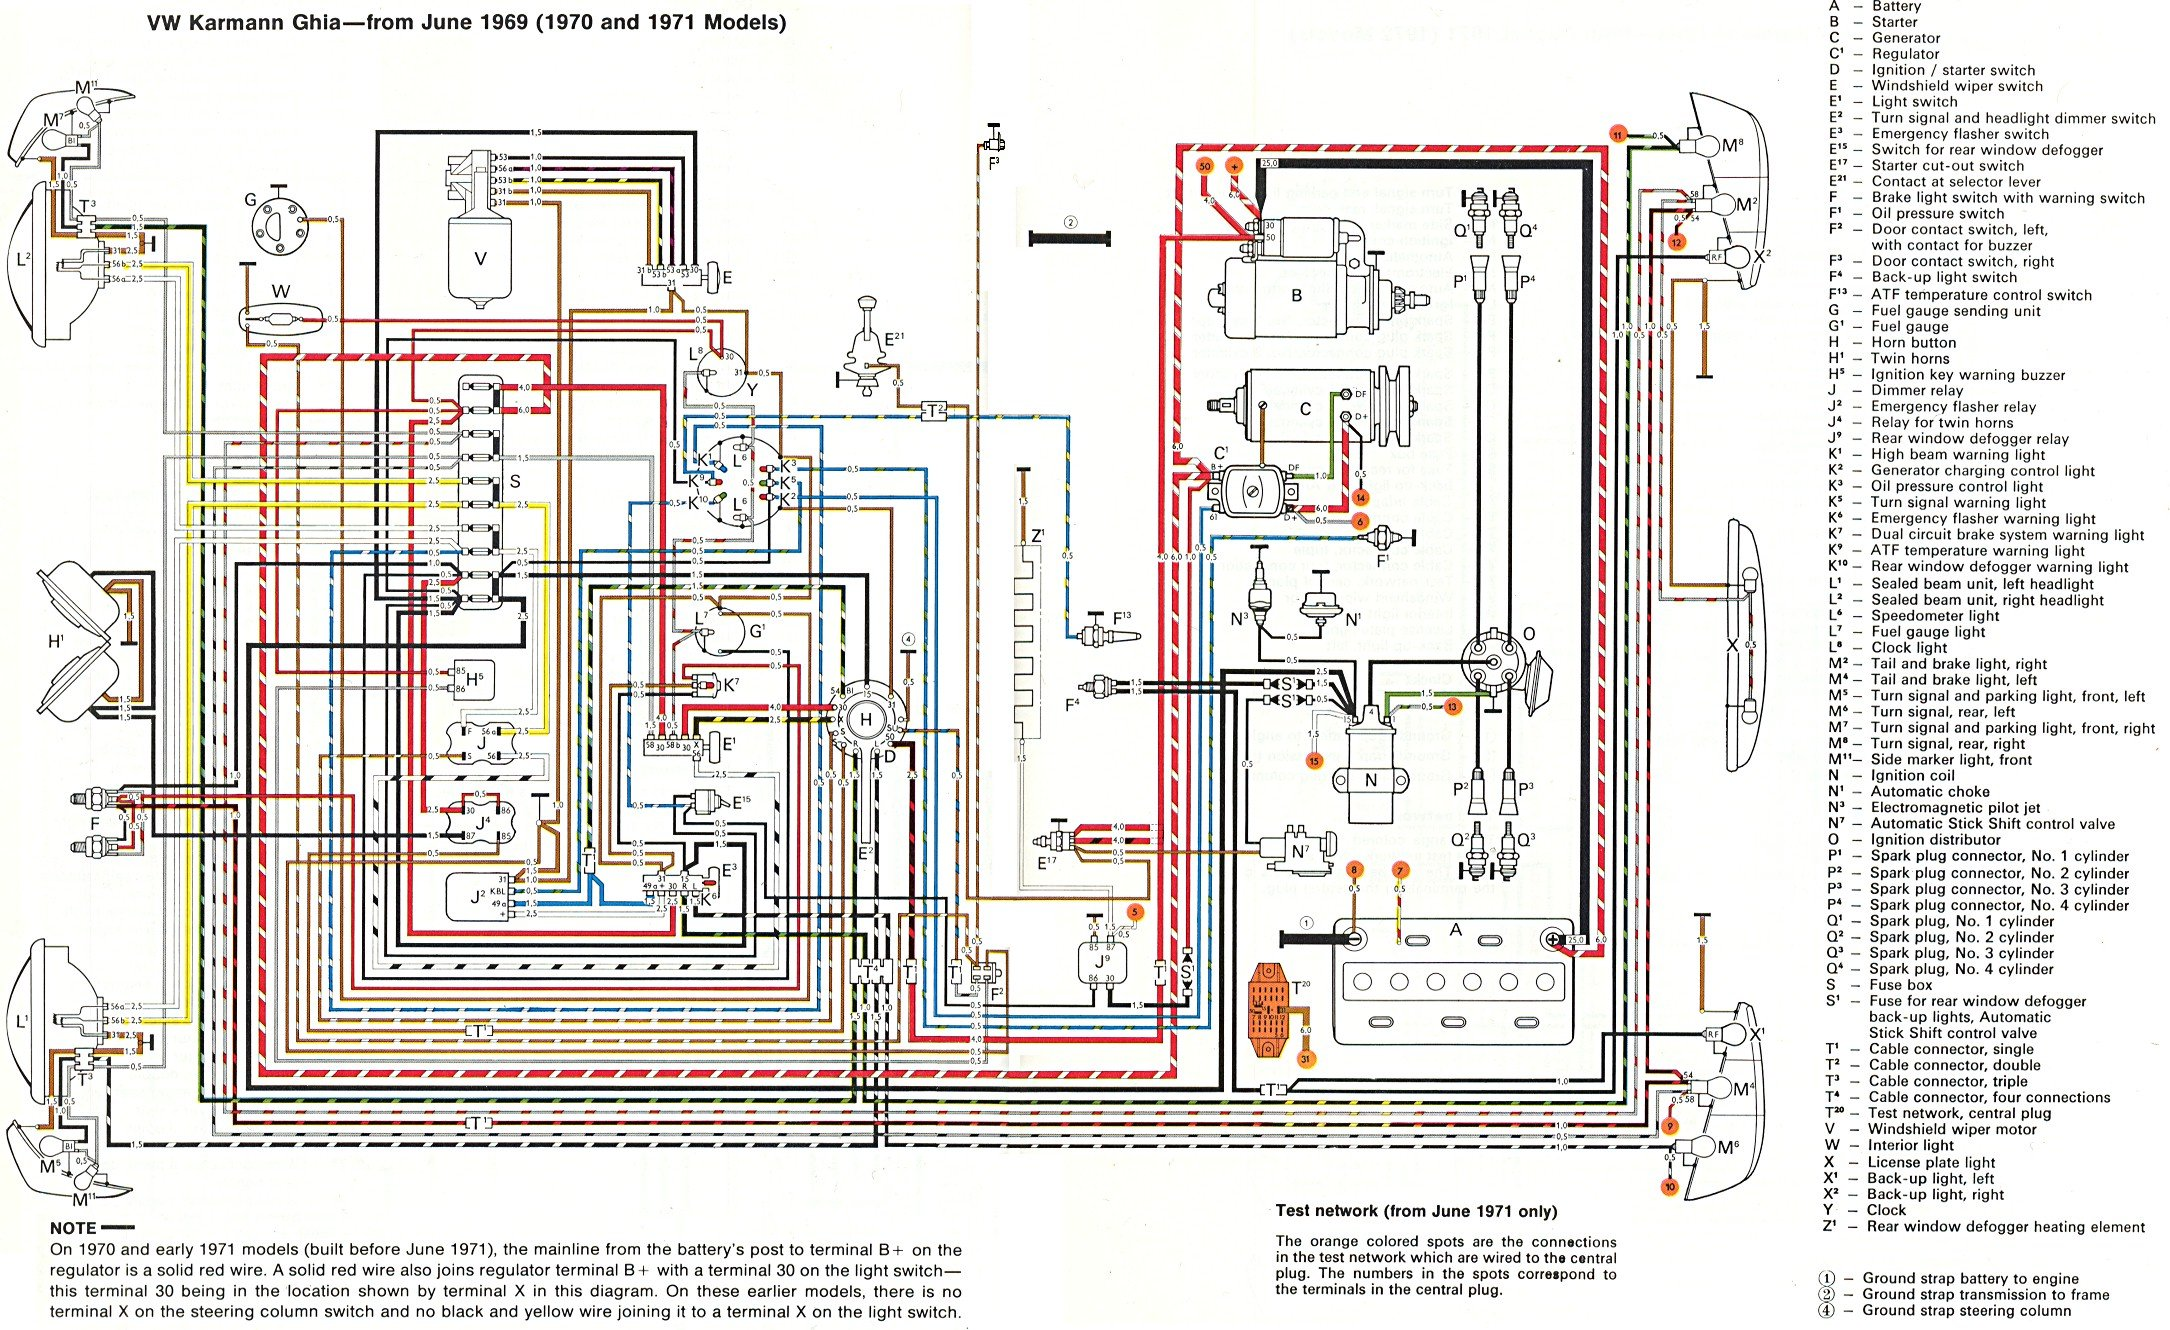 1968 Chevelle Engine Wiring Harness Diagram Library 68 Chevy C10 Thesamba Com Karmann Ghia Diagrams 74 Turn Signal